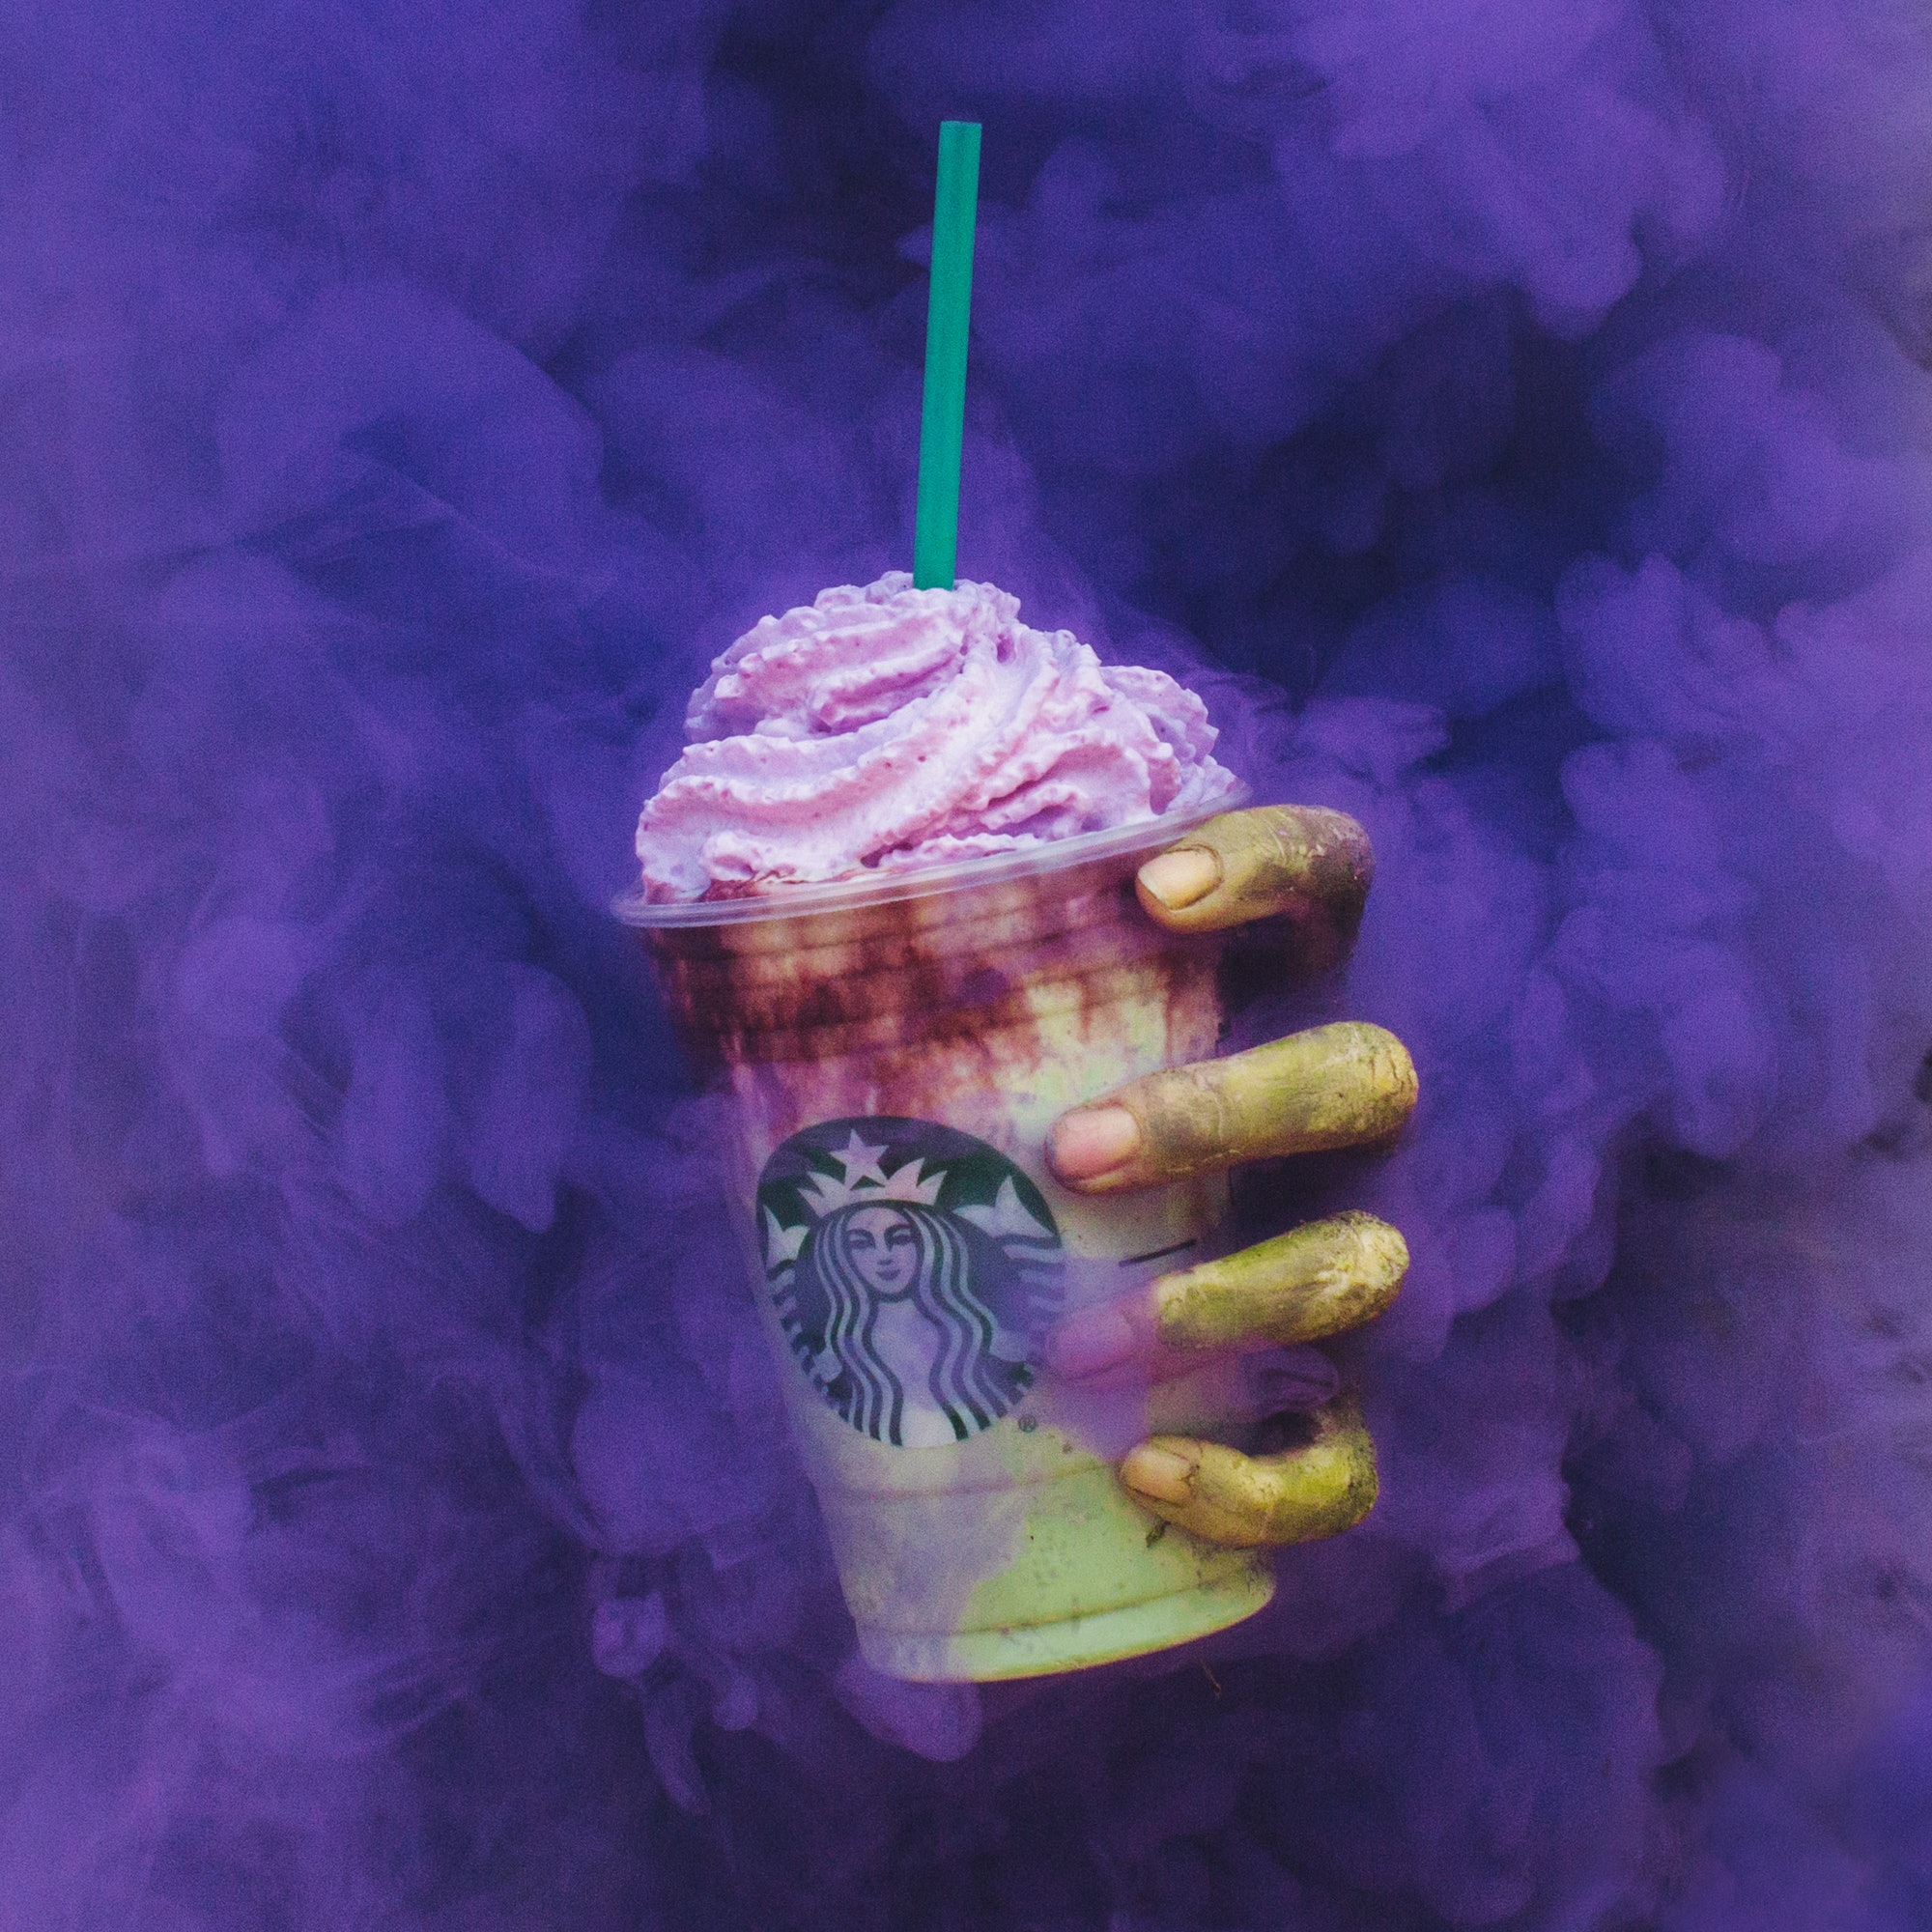 Starbucks offering 'Zombie Frappuccino' for limited time